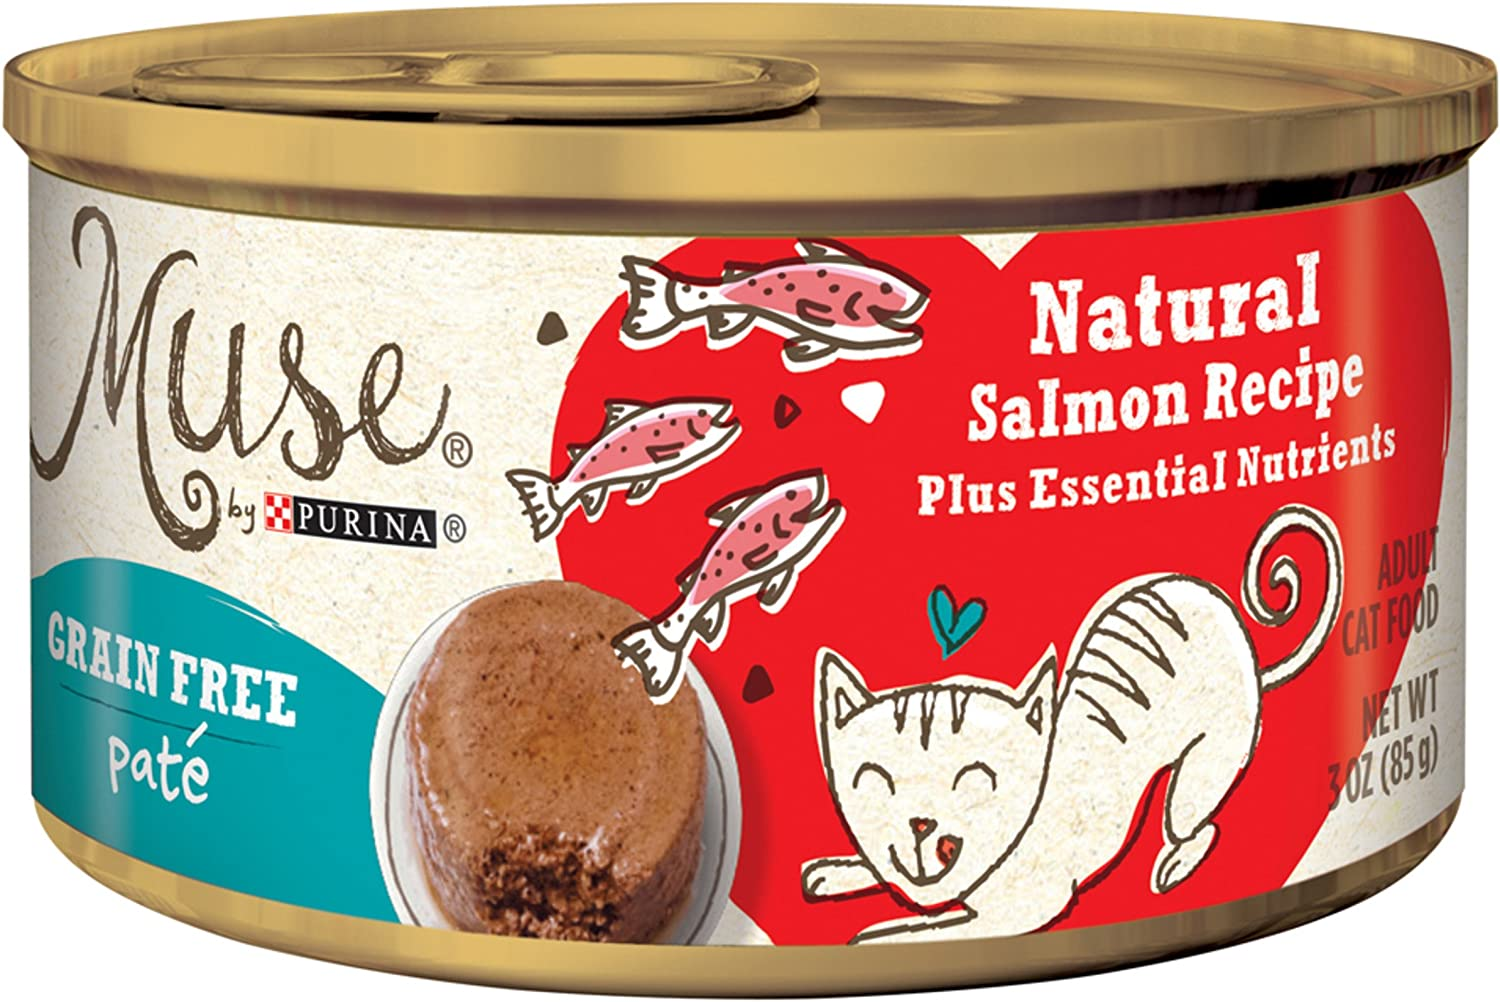 Muse Grain-Free Natural Pate Canned Wet Cat Food Featured Image